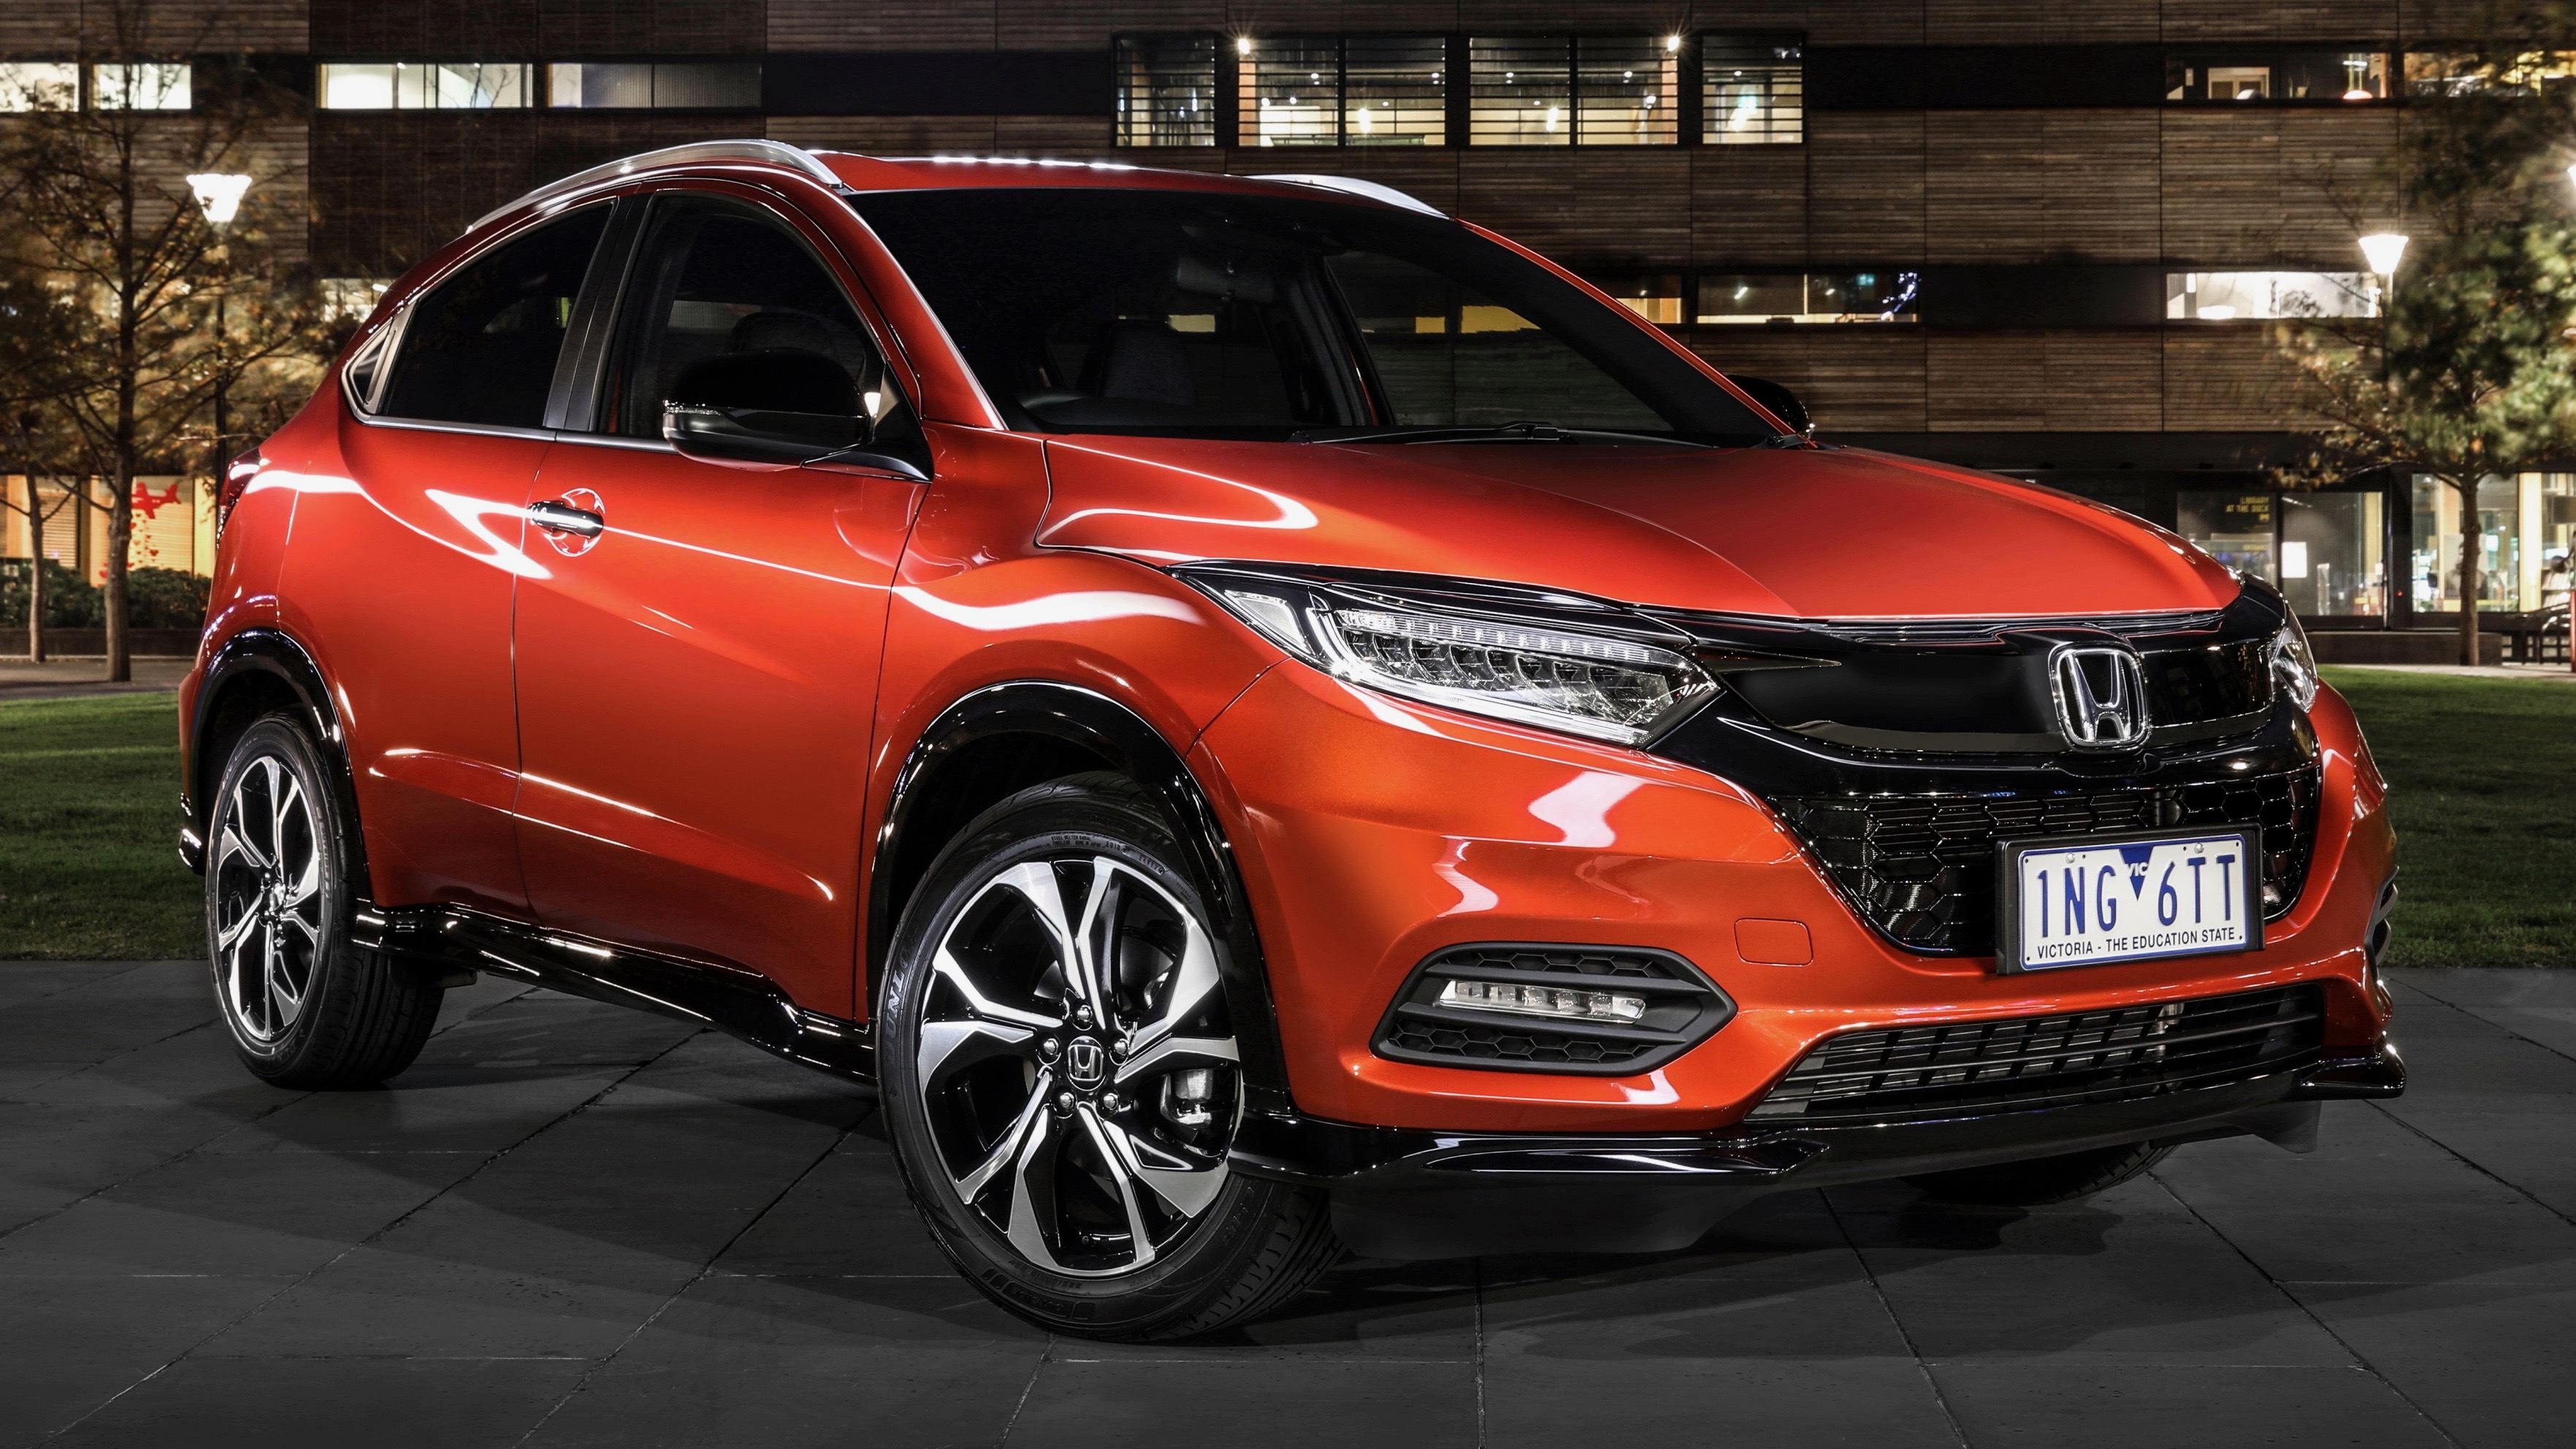 2019 Honda HR-V RS Phoenix Orange front 3/4